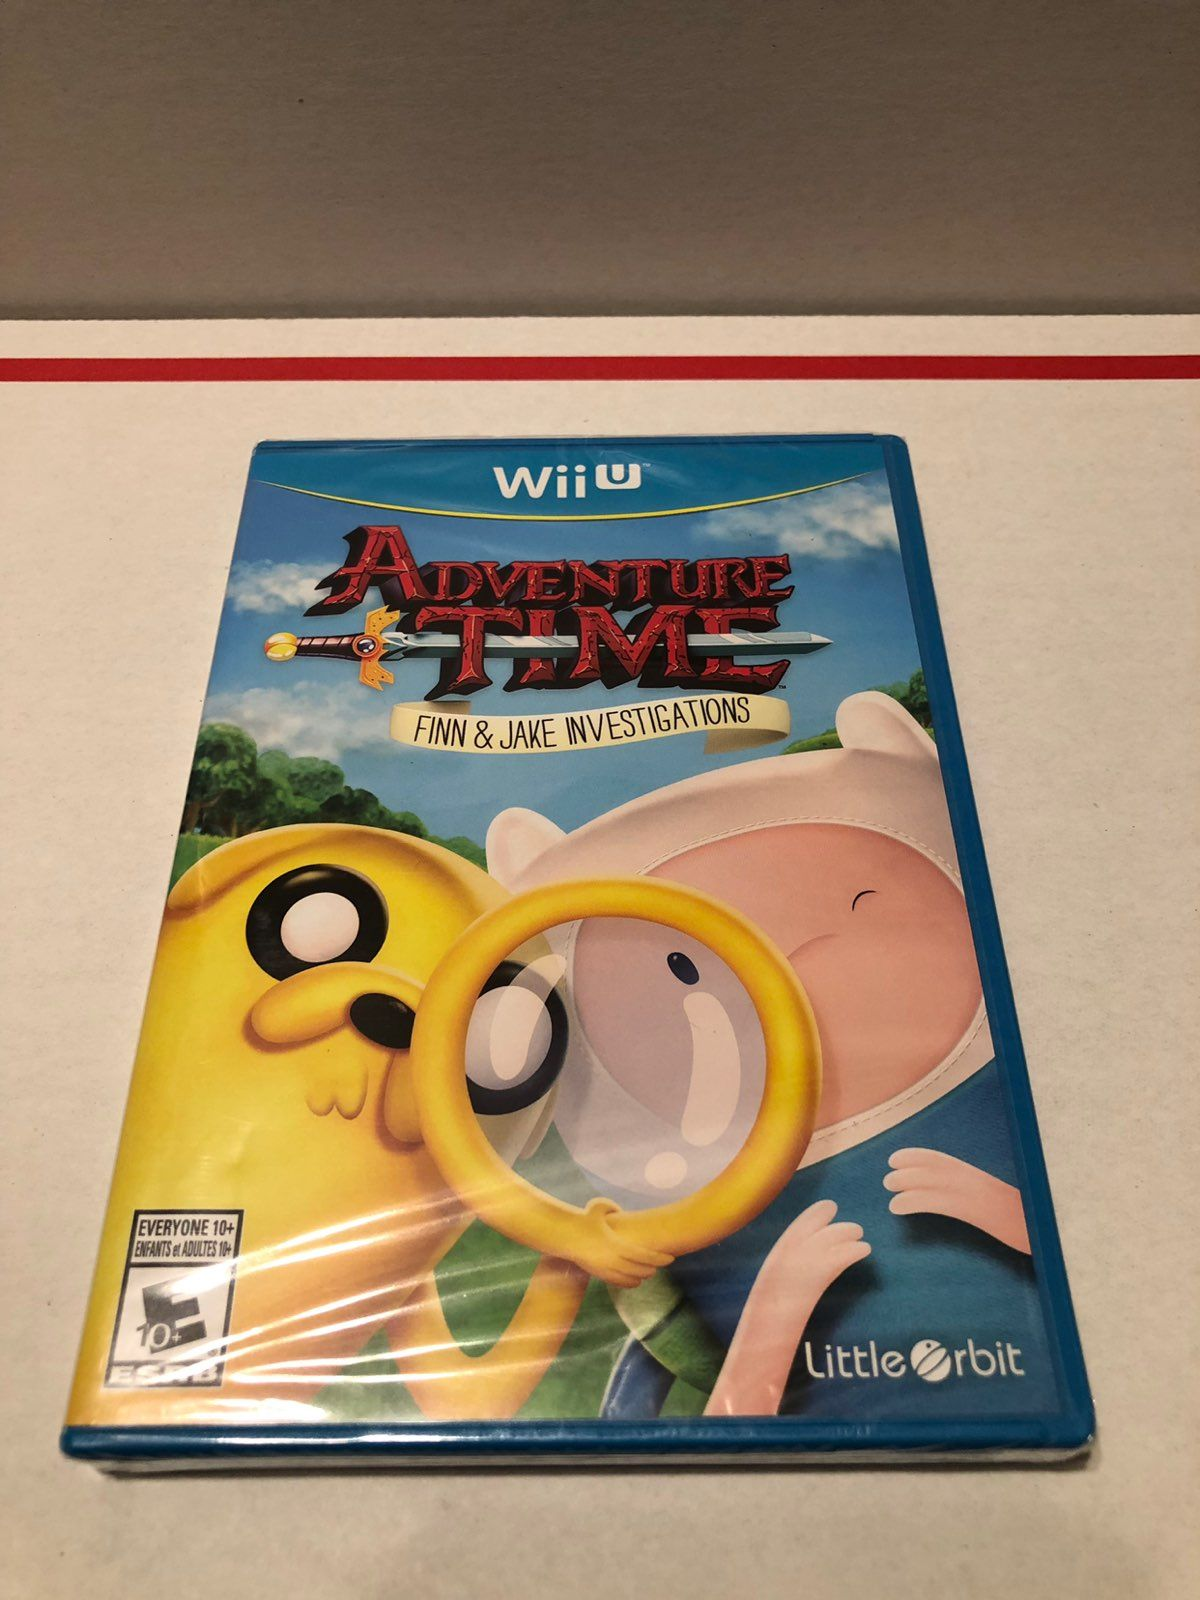 Check Out My Adventure Time Finn Jake Investigation Wii U Game